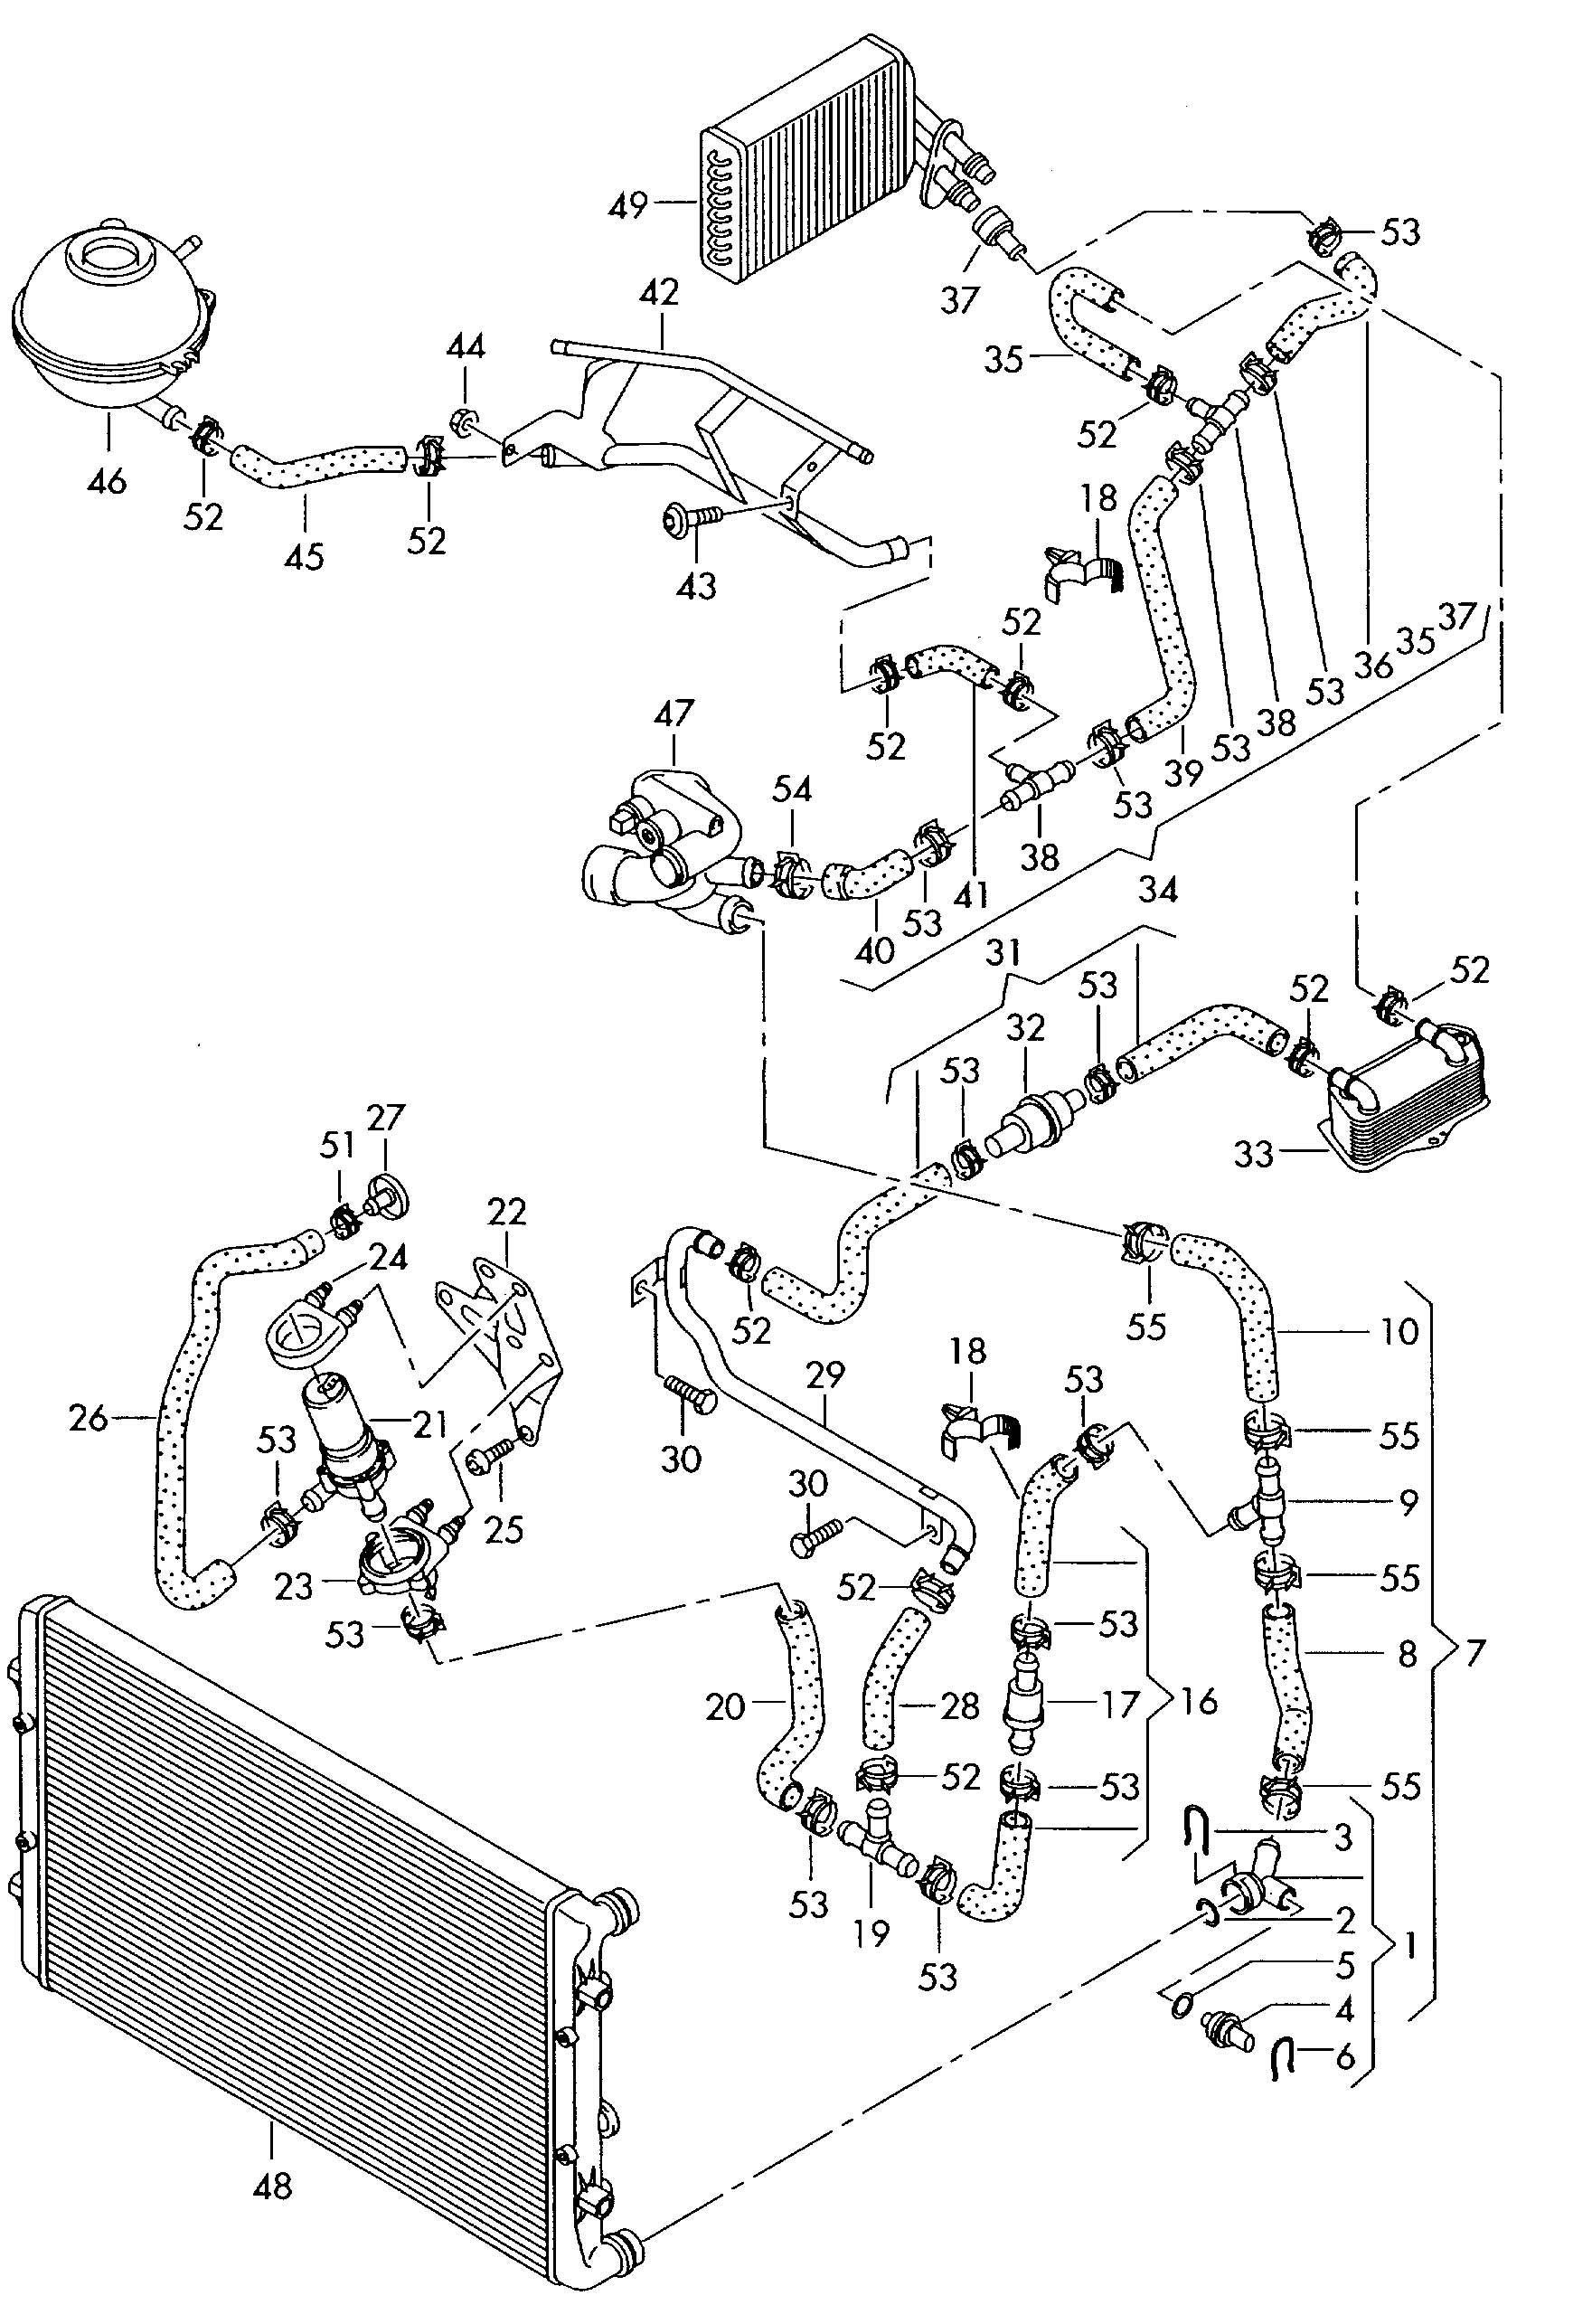 Audi A3 Cooling System Diagram